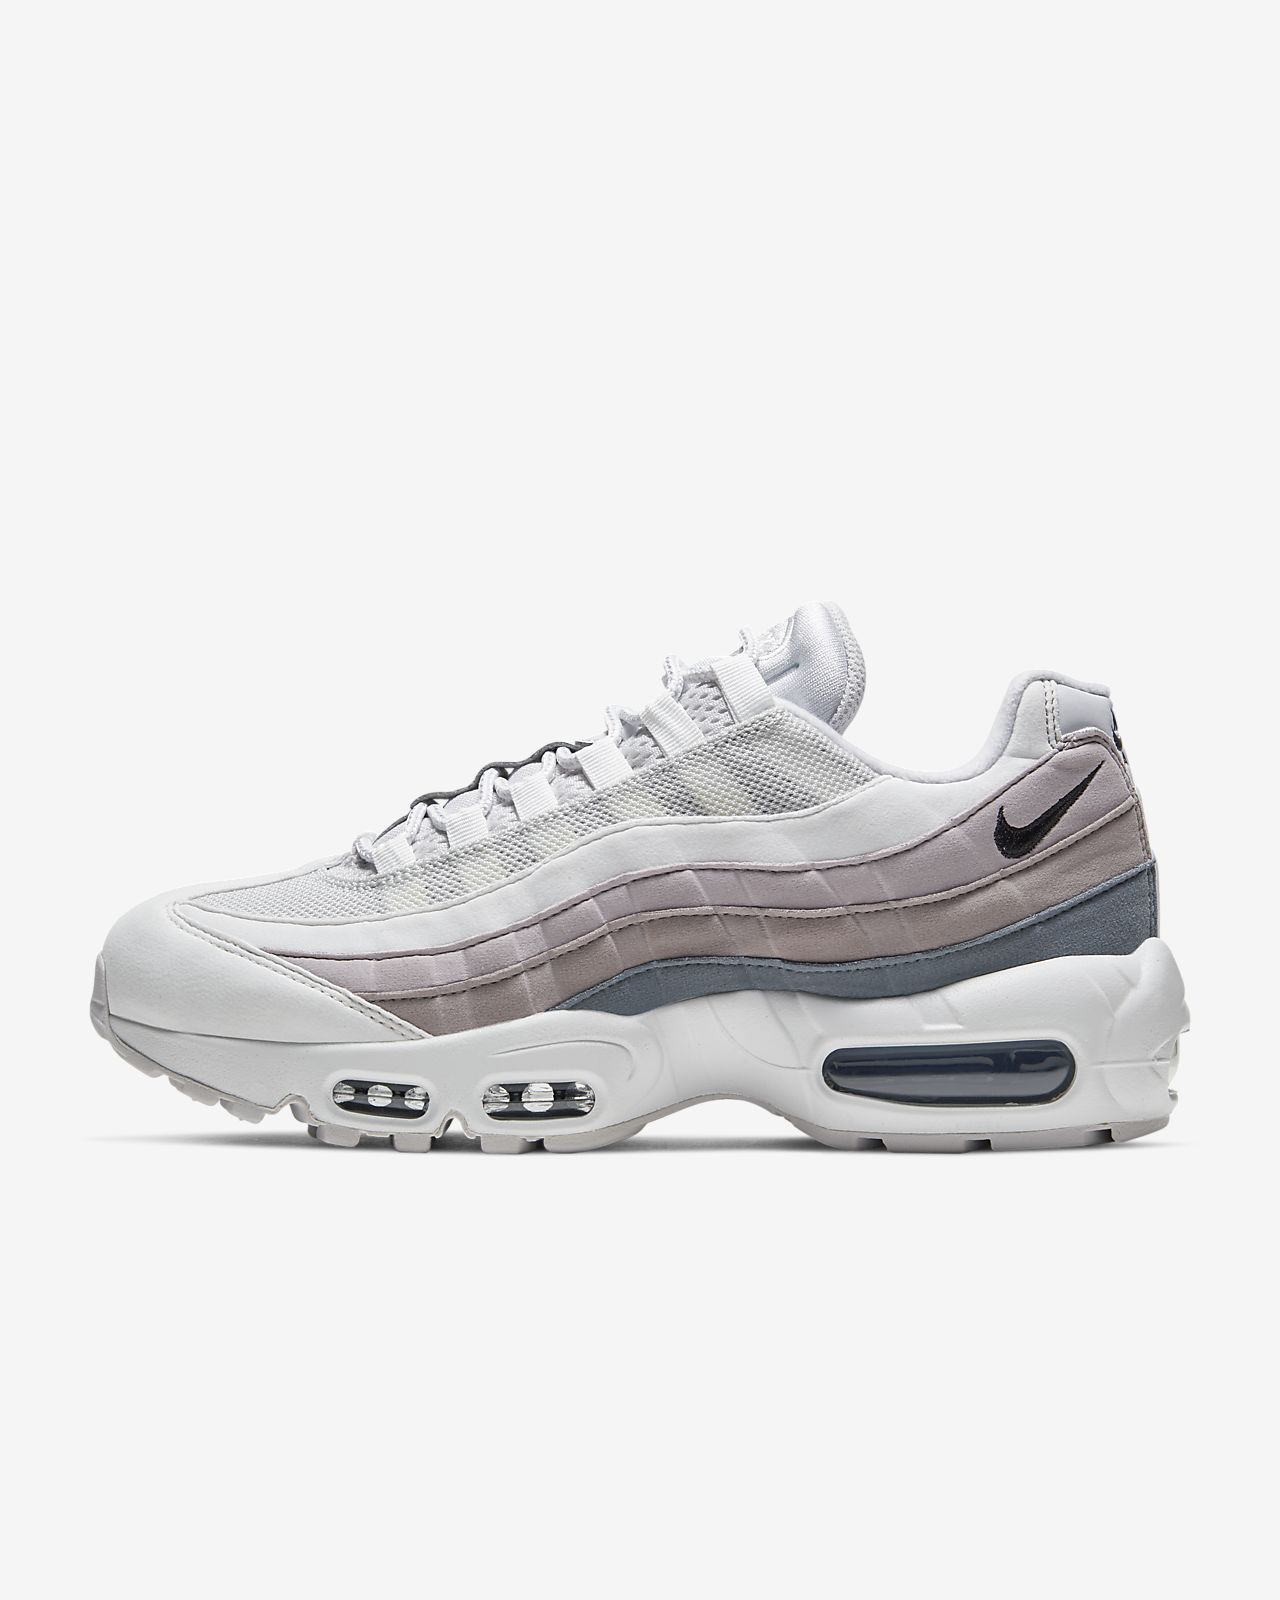 separation shoes 2729a d9632 Women s Shoe. Nike Air Max 95